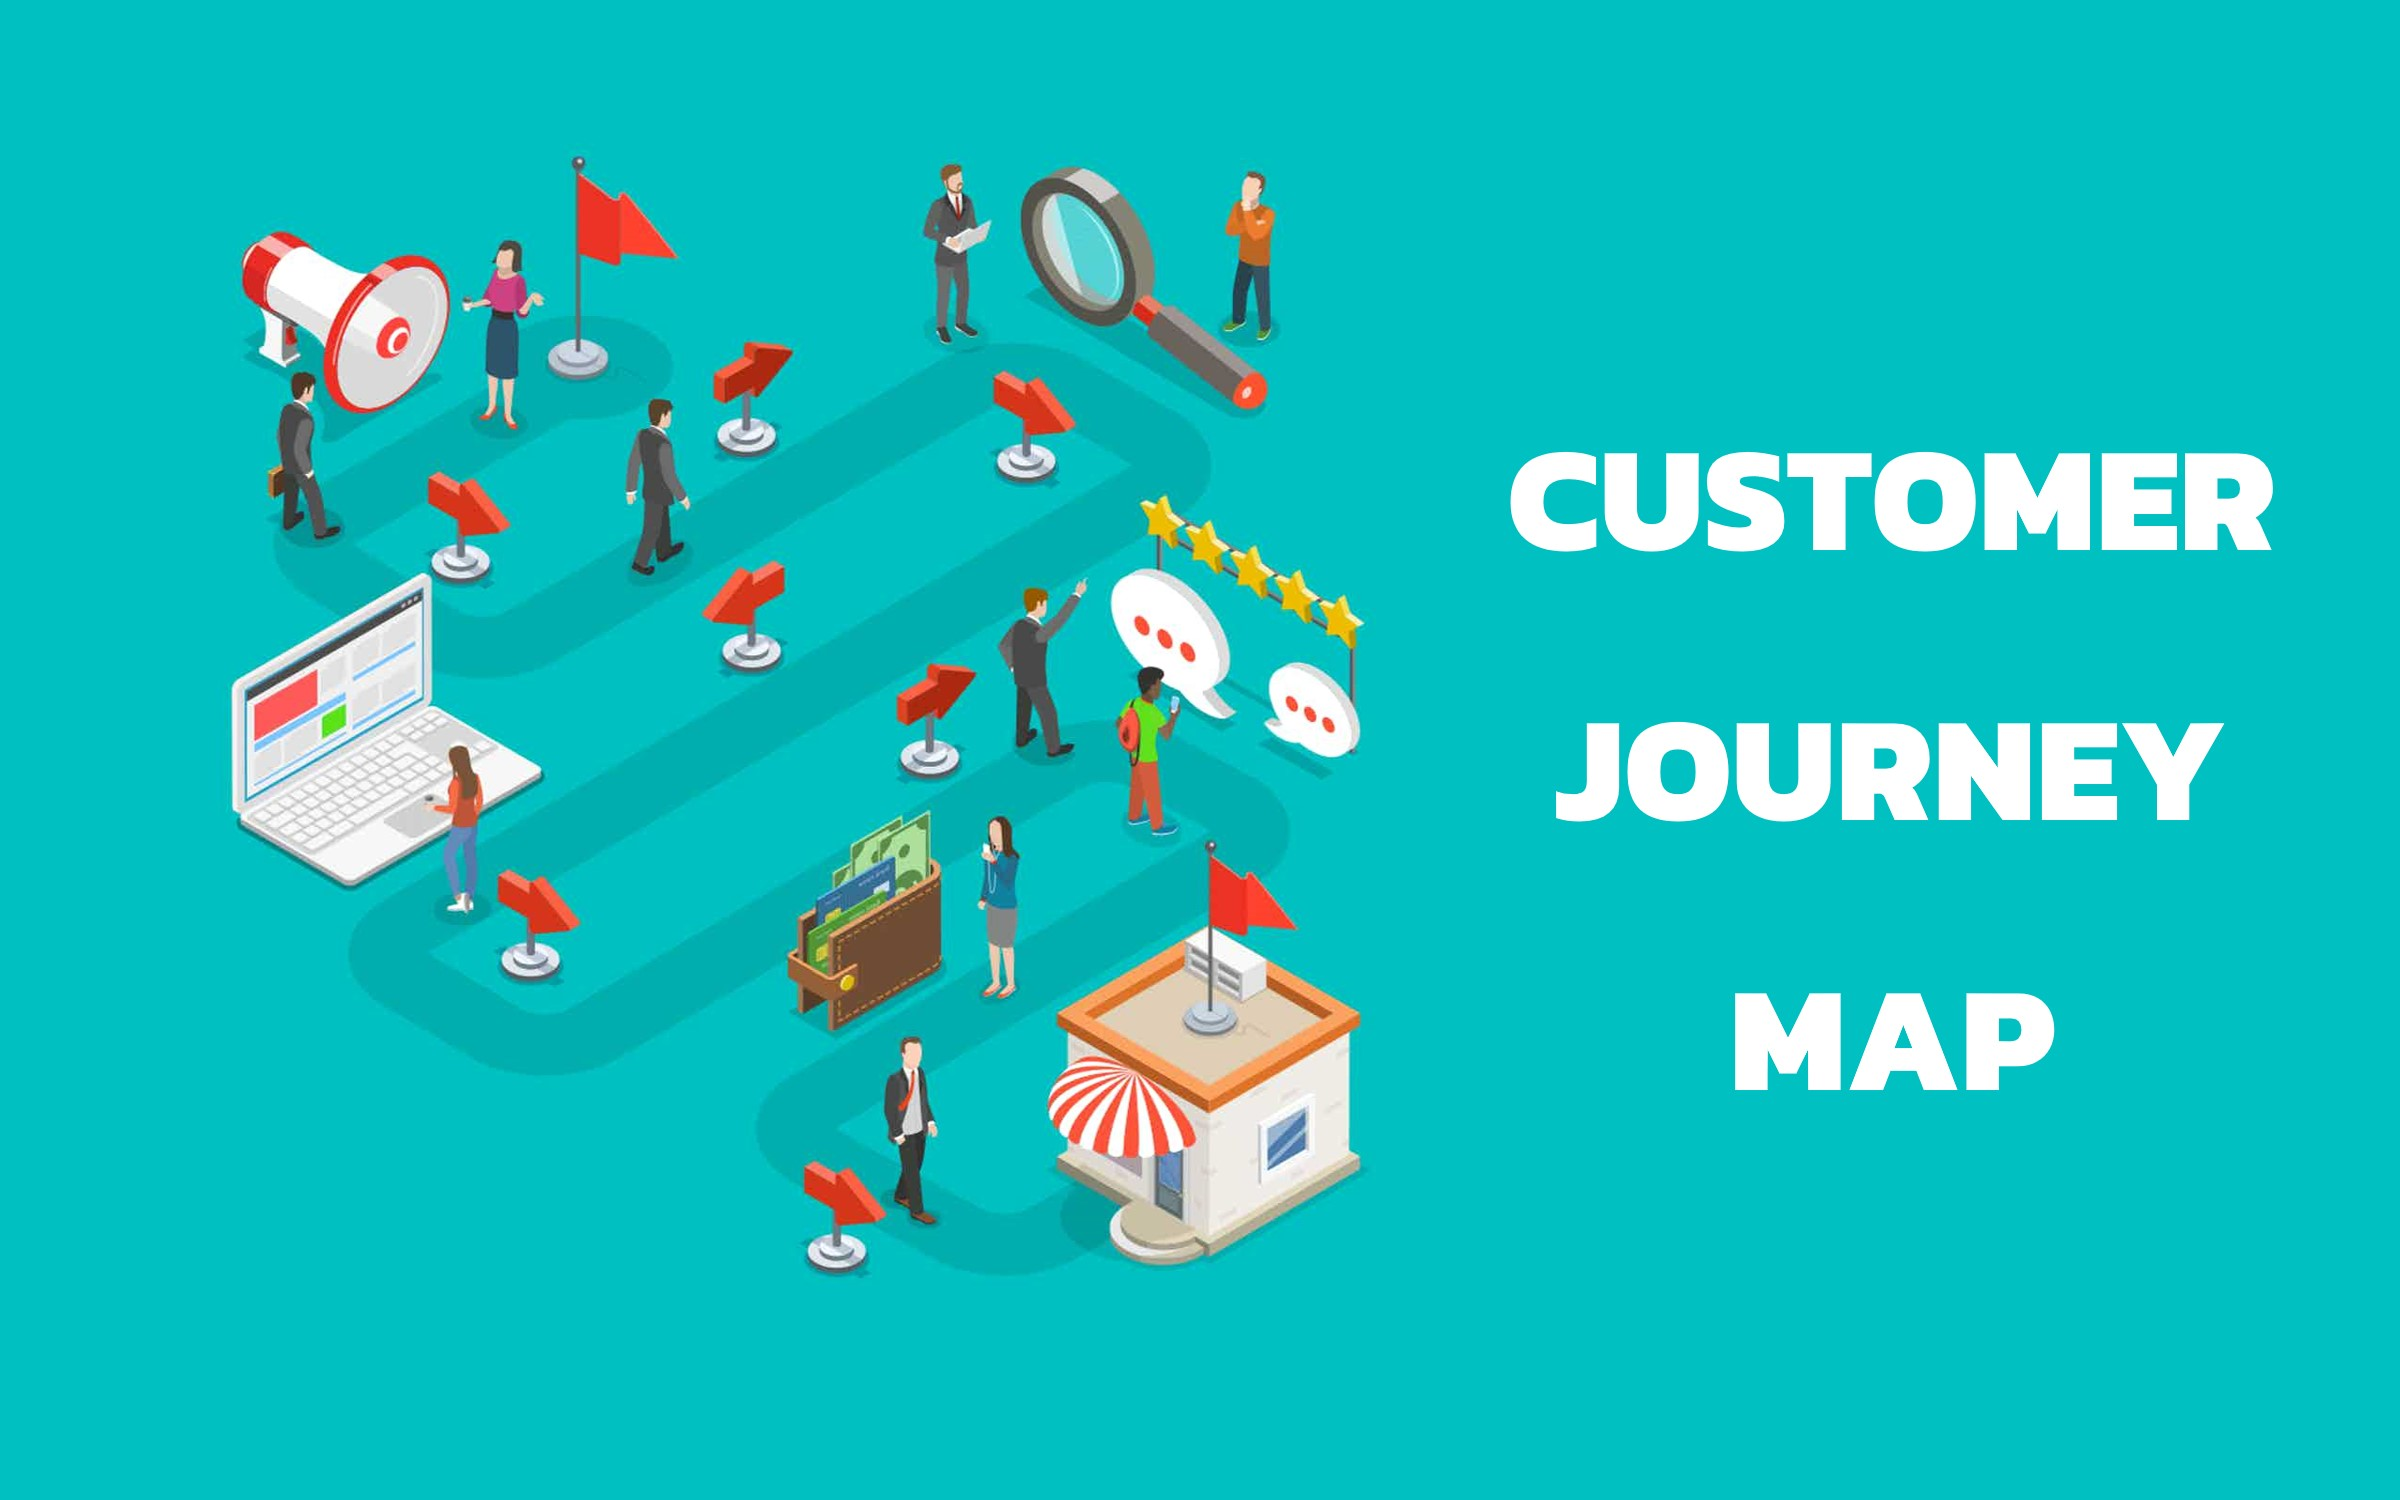 Customer Journey tac dong nhu the nao den cac chien luoc kinh doanh